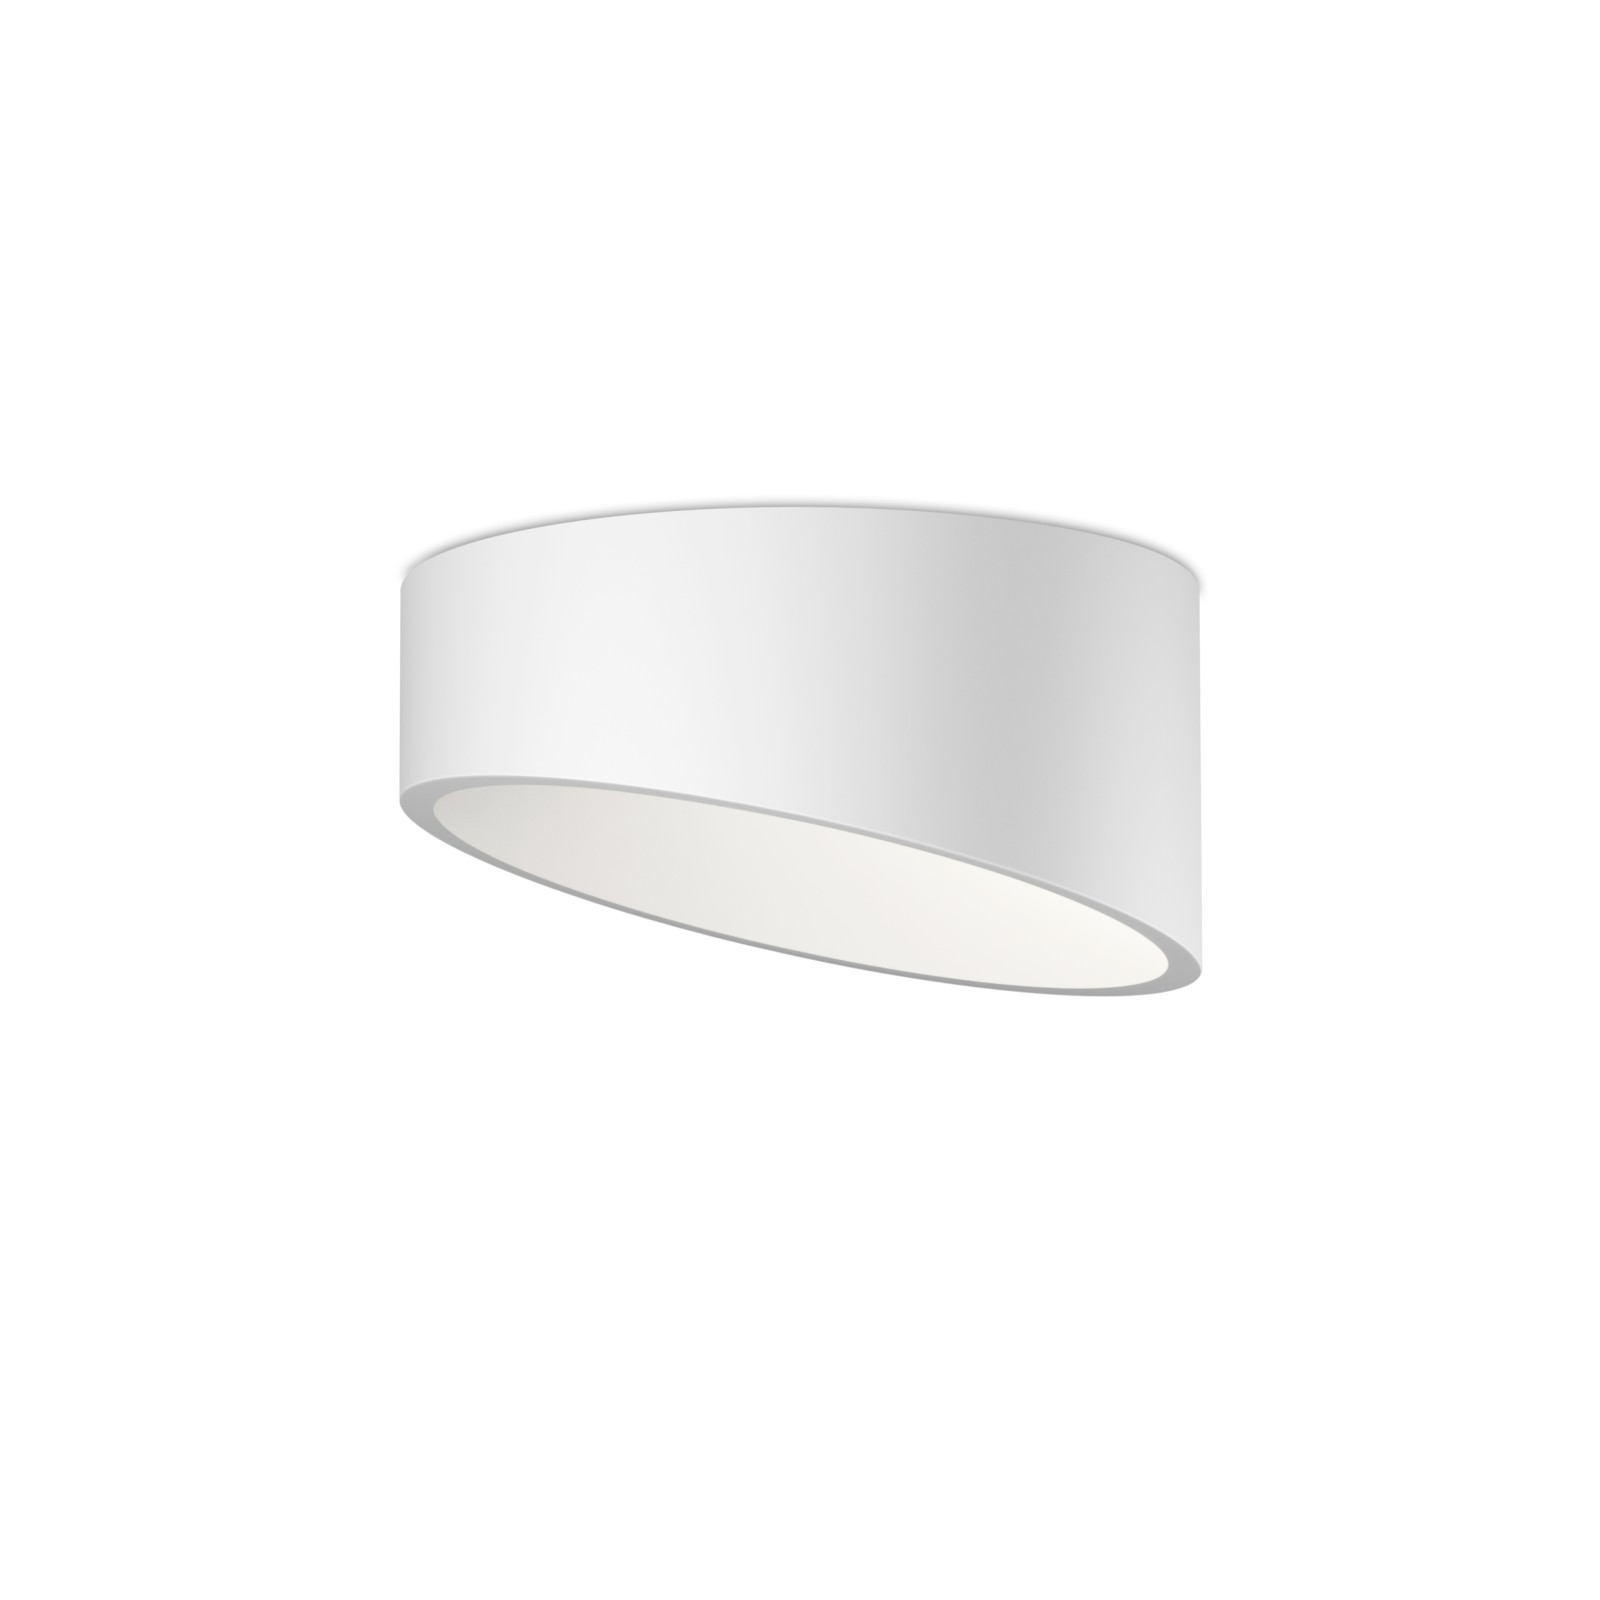 Domo 8201 Ceiling Light Yes